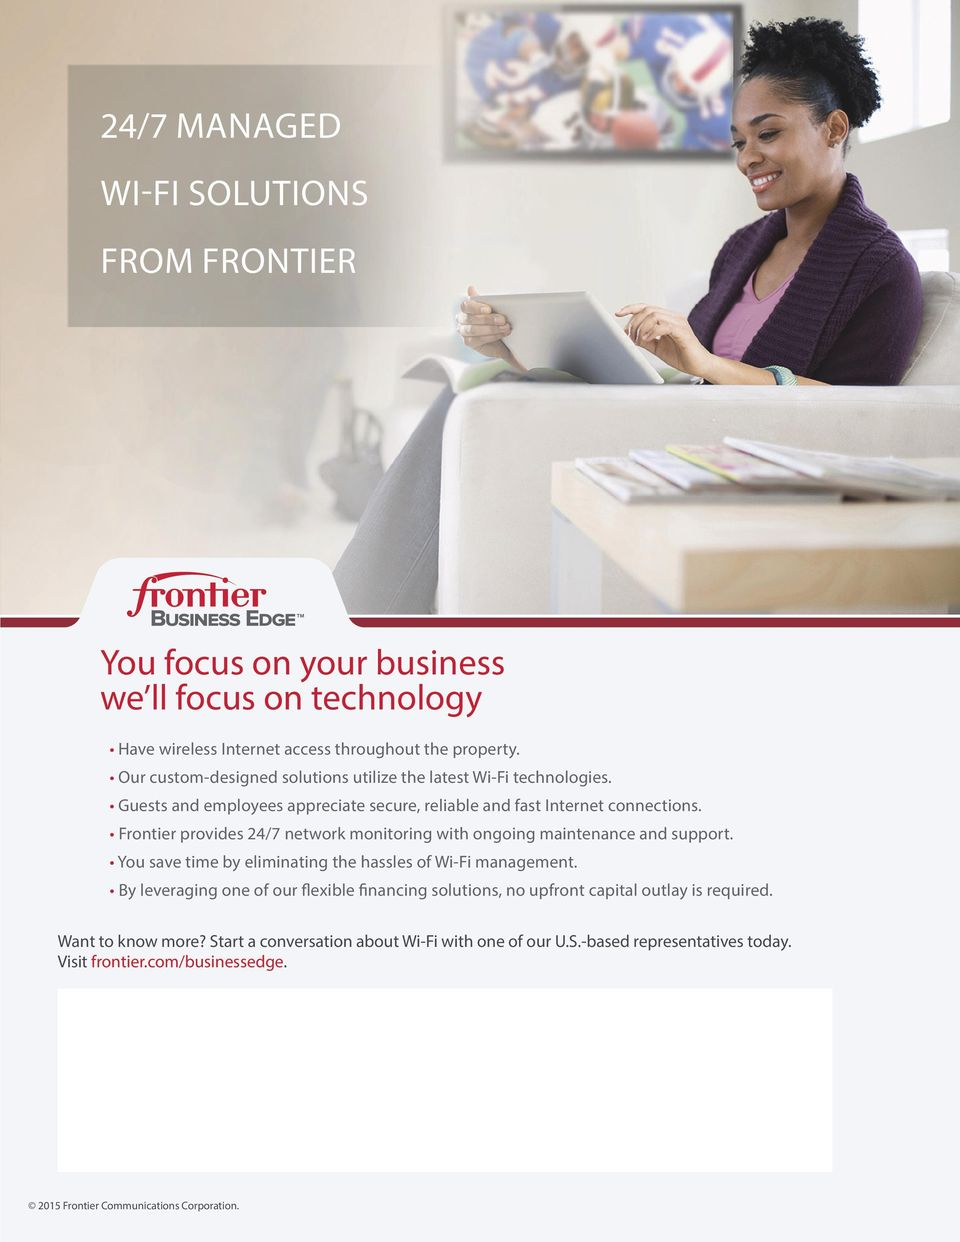 Frontier provides 24/7 network monitoring with ongoing maintenance and support. You save time by eliminating the hassles of Wi-Fi management.